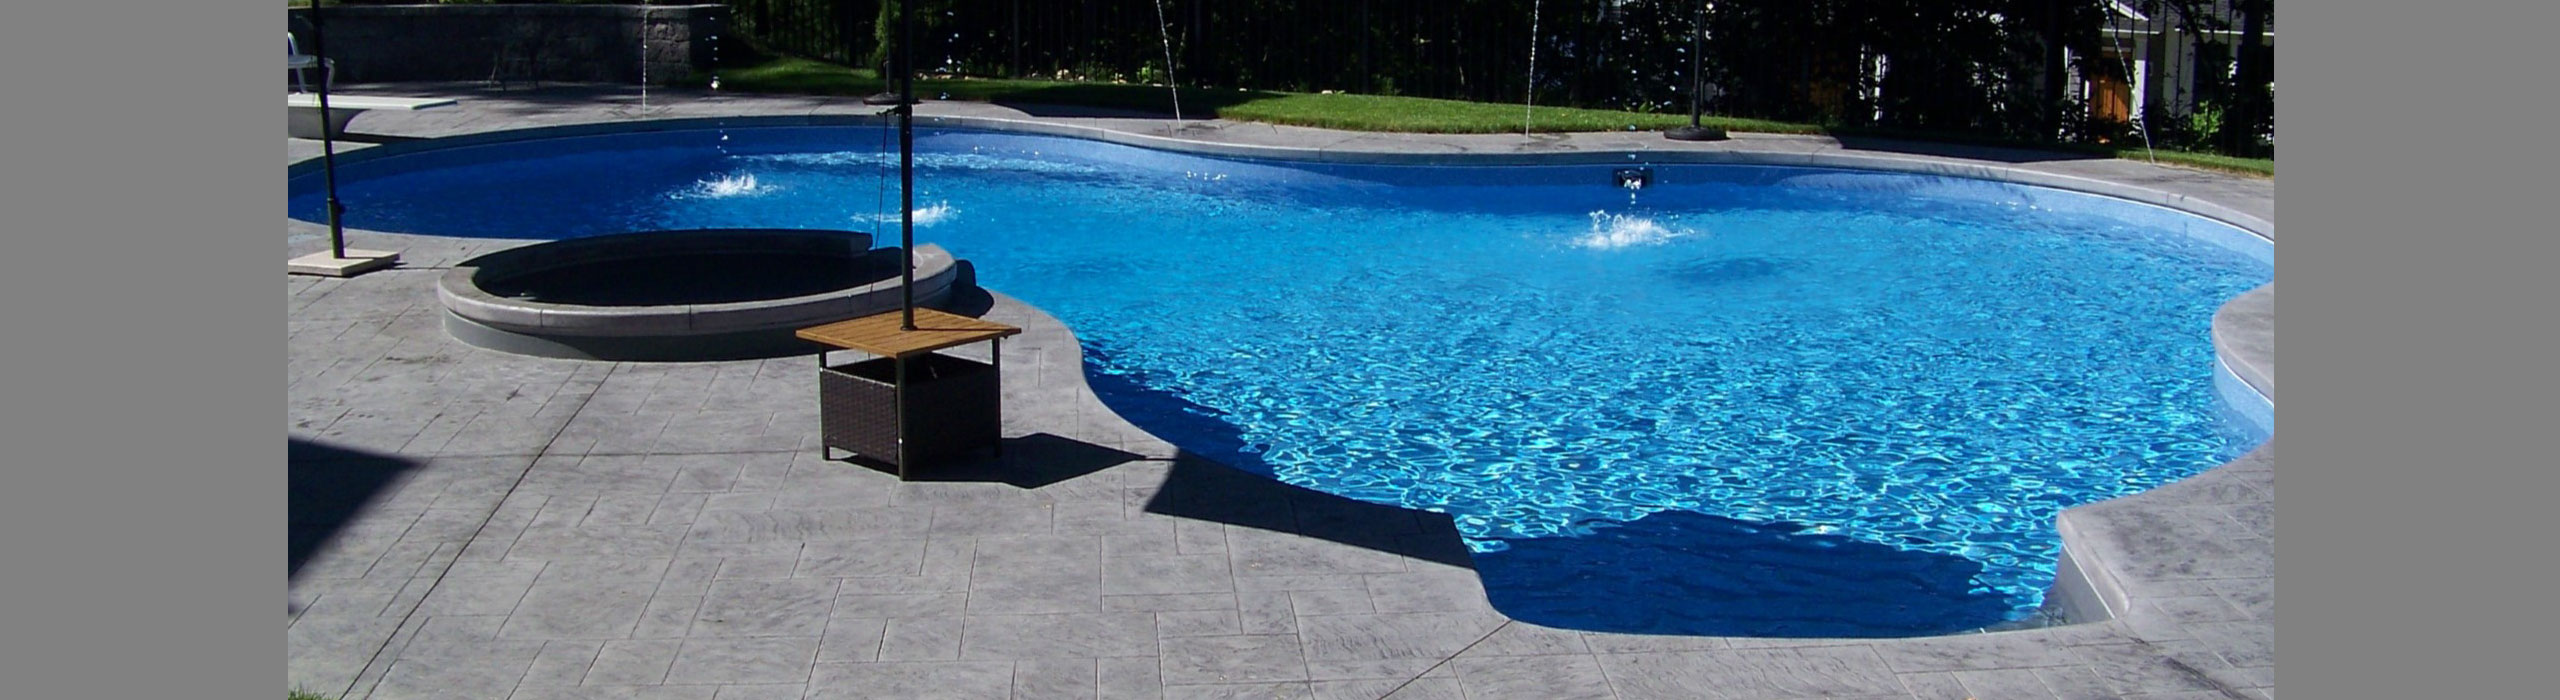 In ground pools above ground pools spas and hot tubs for In ground pool companies